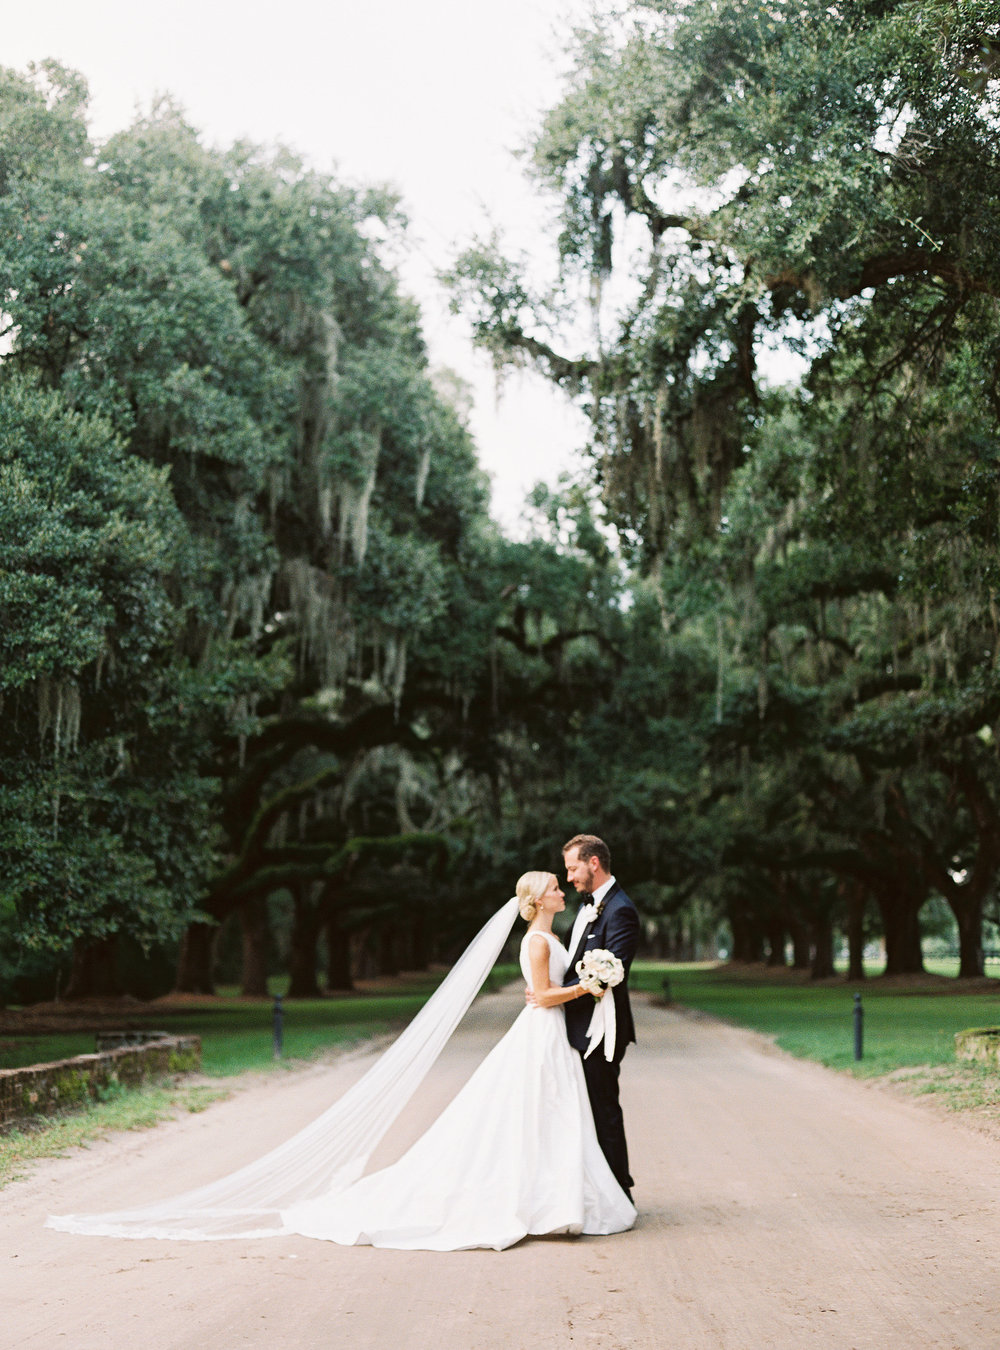 Wedding portraits at Boone Hall Plantation  //  photography by Landon Jacob  //  A Lowcountry Wedding Magazine